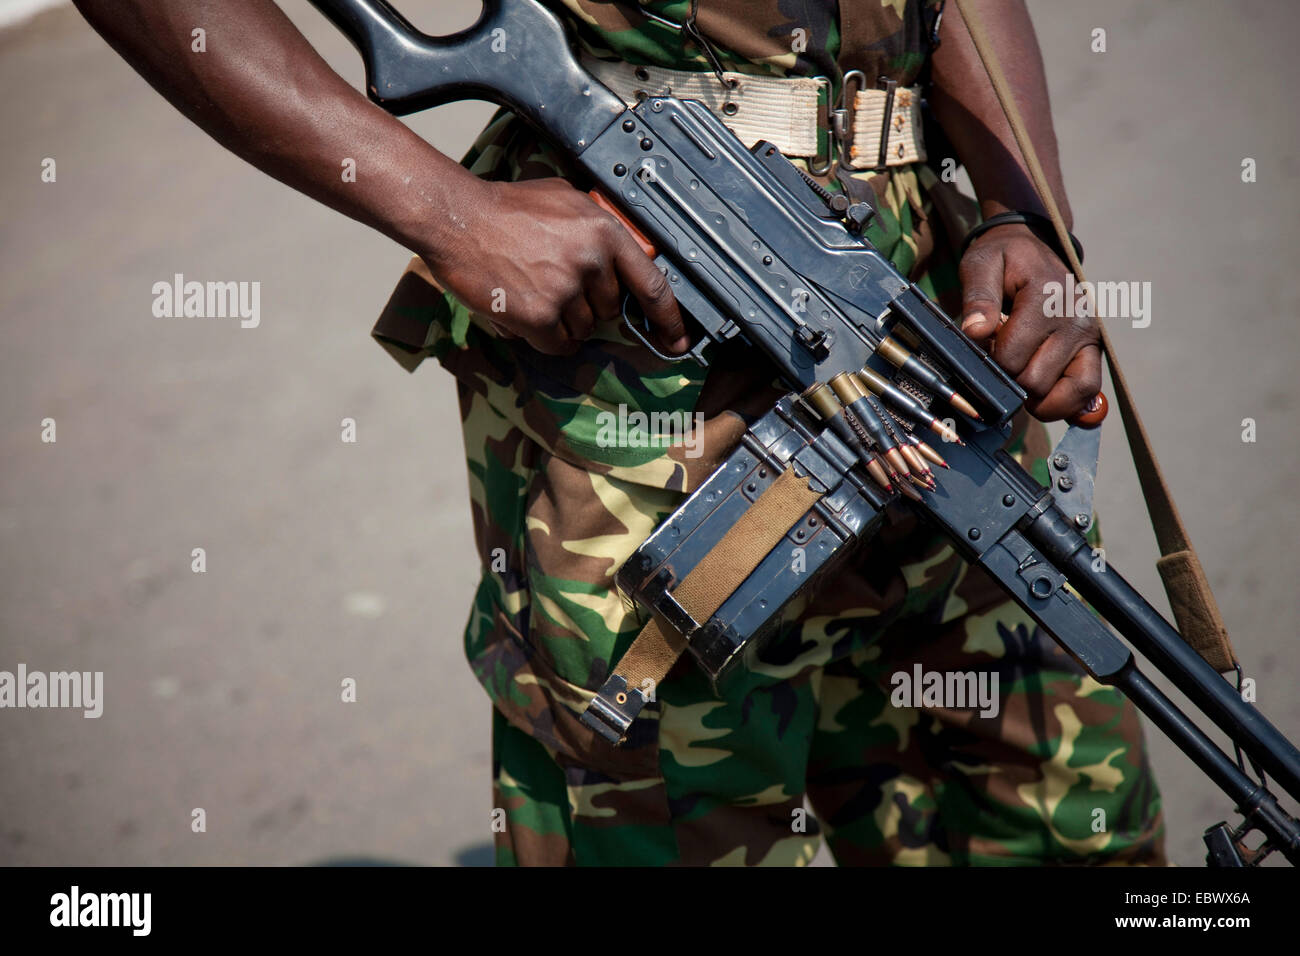 machine gun hanging over a soldier's shoulder during an event at the Independence Day (Juli 1), Burundi, Bujumbura - Stock Image